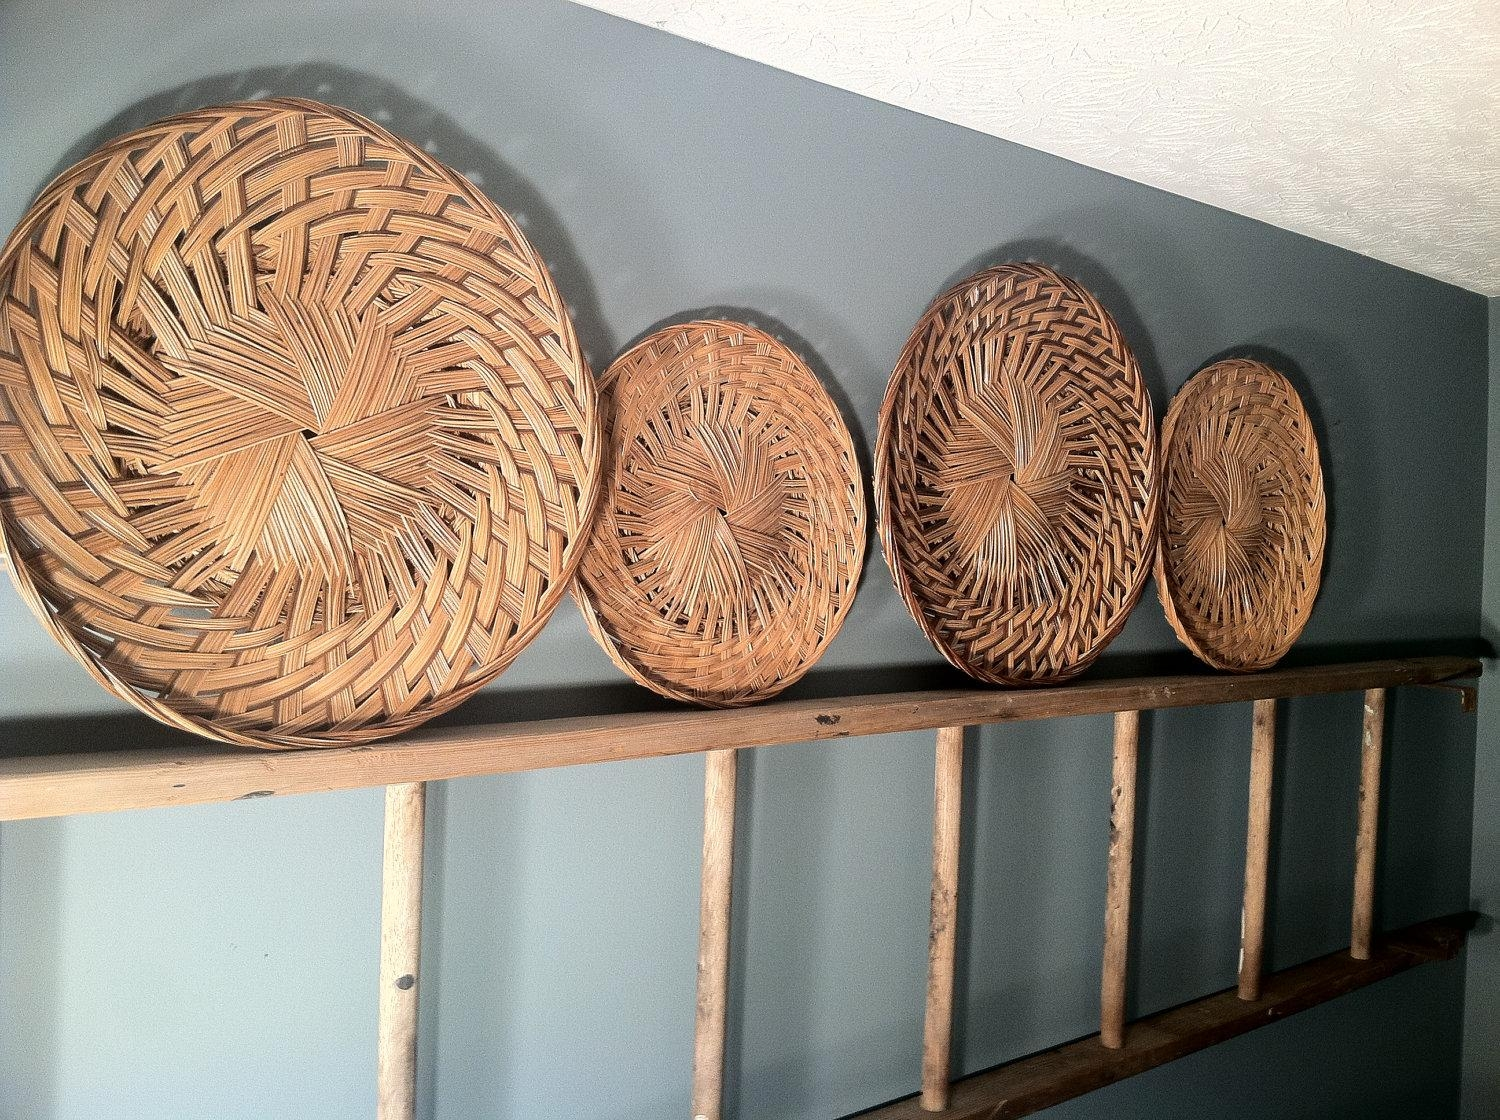 Wall Decor: Wicker Wall Decor Images. Trendy Wall (View 6 of 20)